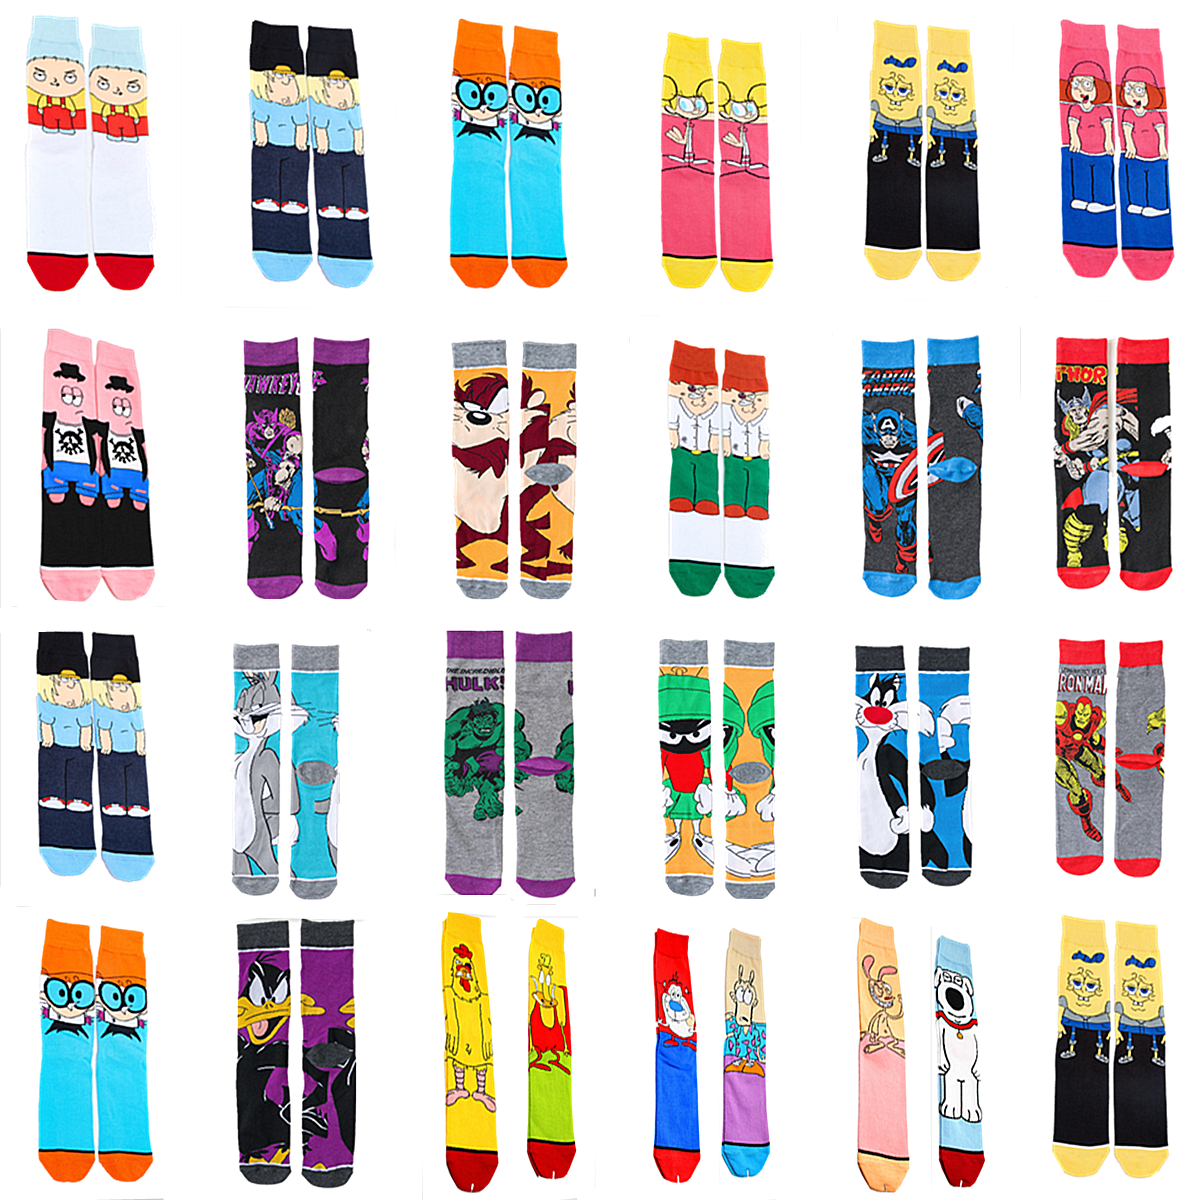 Personality Funny Anime Socks Fashion Cartoon Happy Men Women Sock Novelty High Quality Stitching Pattern Cotton Crew Skarpety